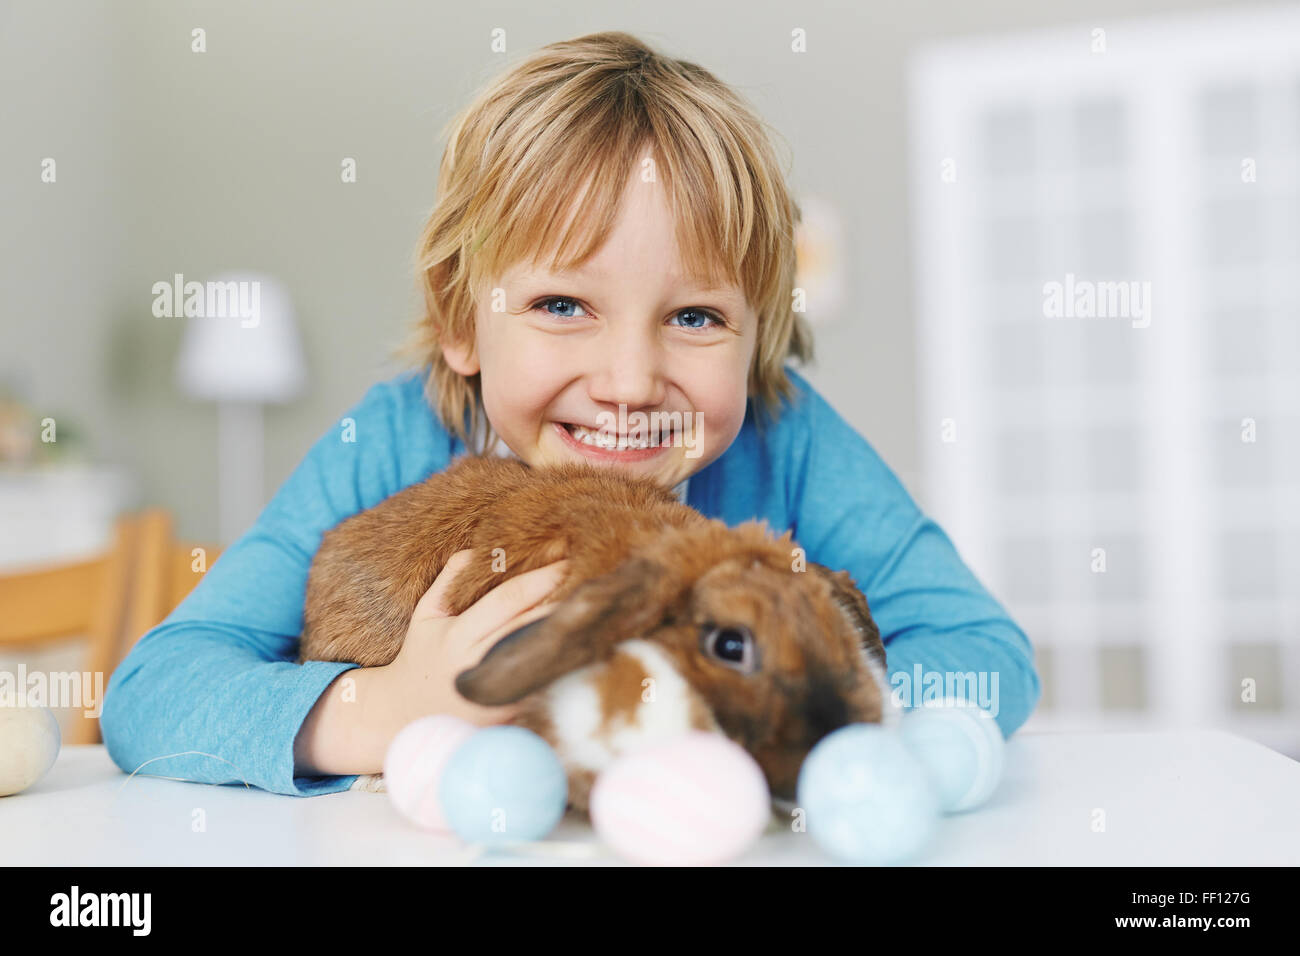 Joyful youngster with Easter rabbit looking at camera - Stock Image